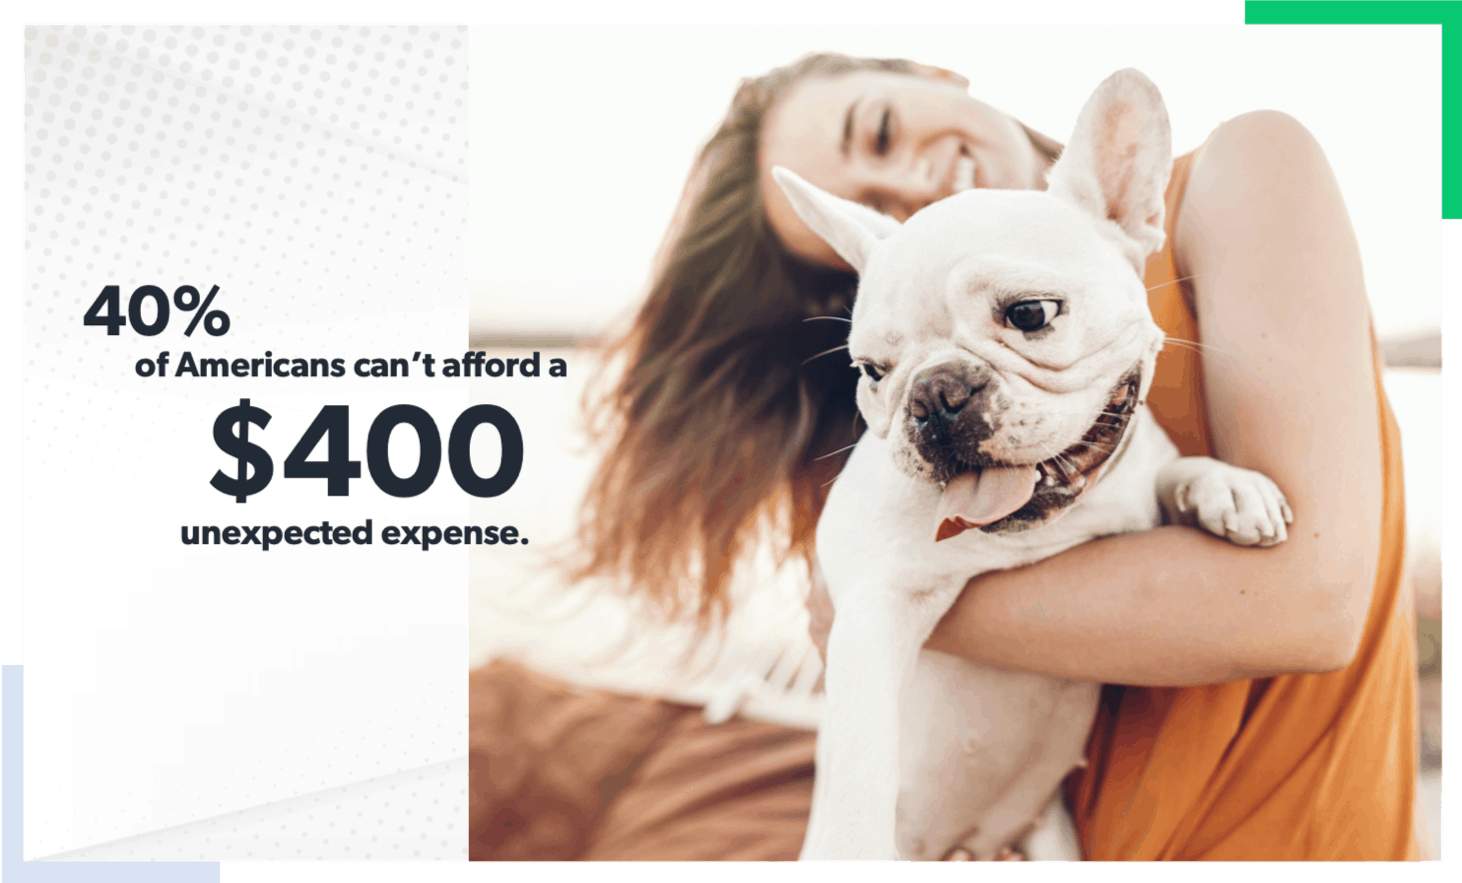 woman holding a frenchie with a statistic about unexpected expenses.